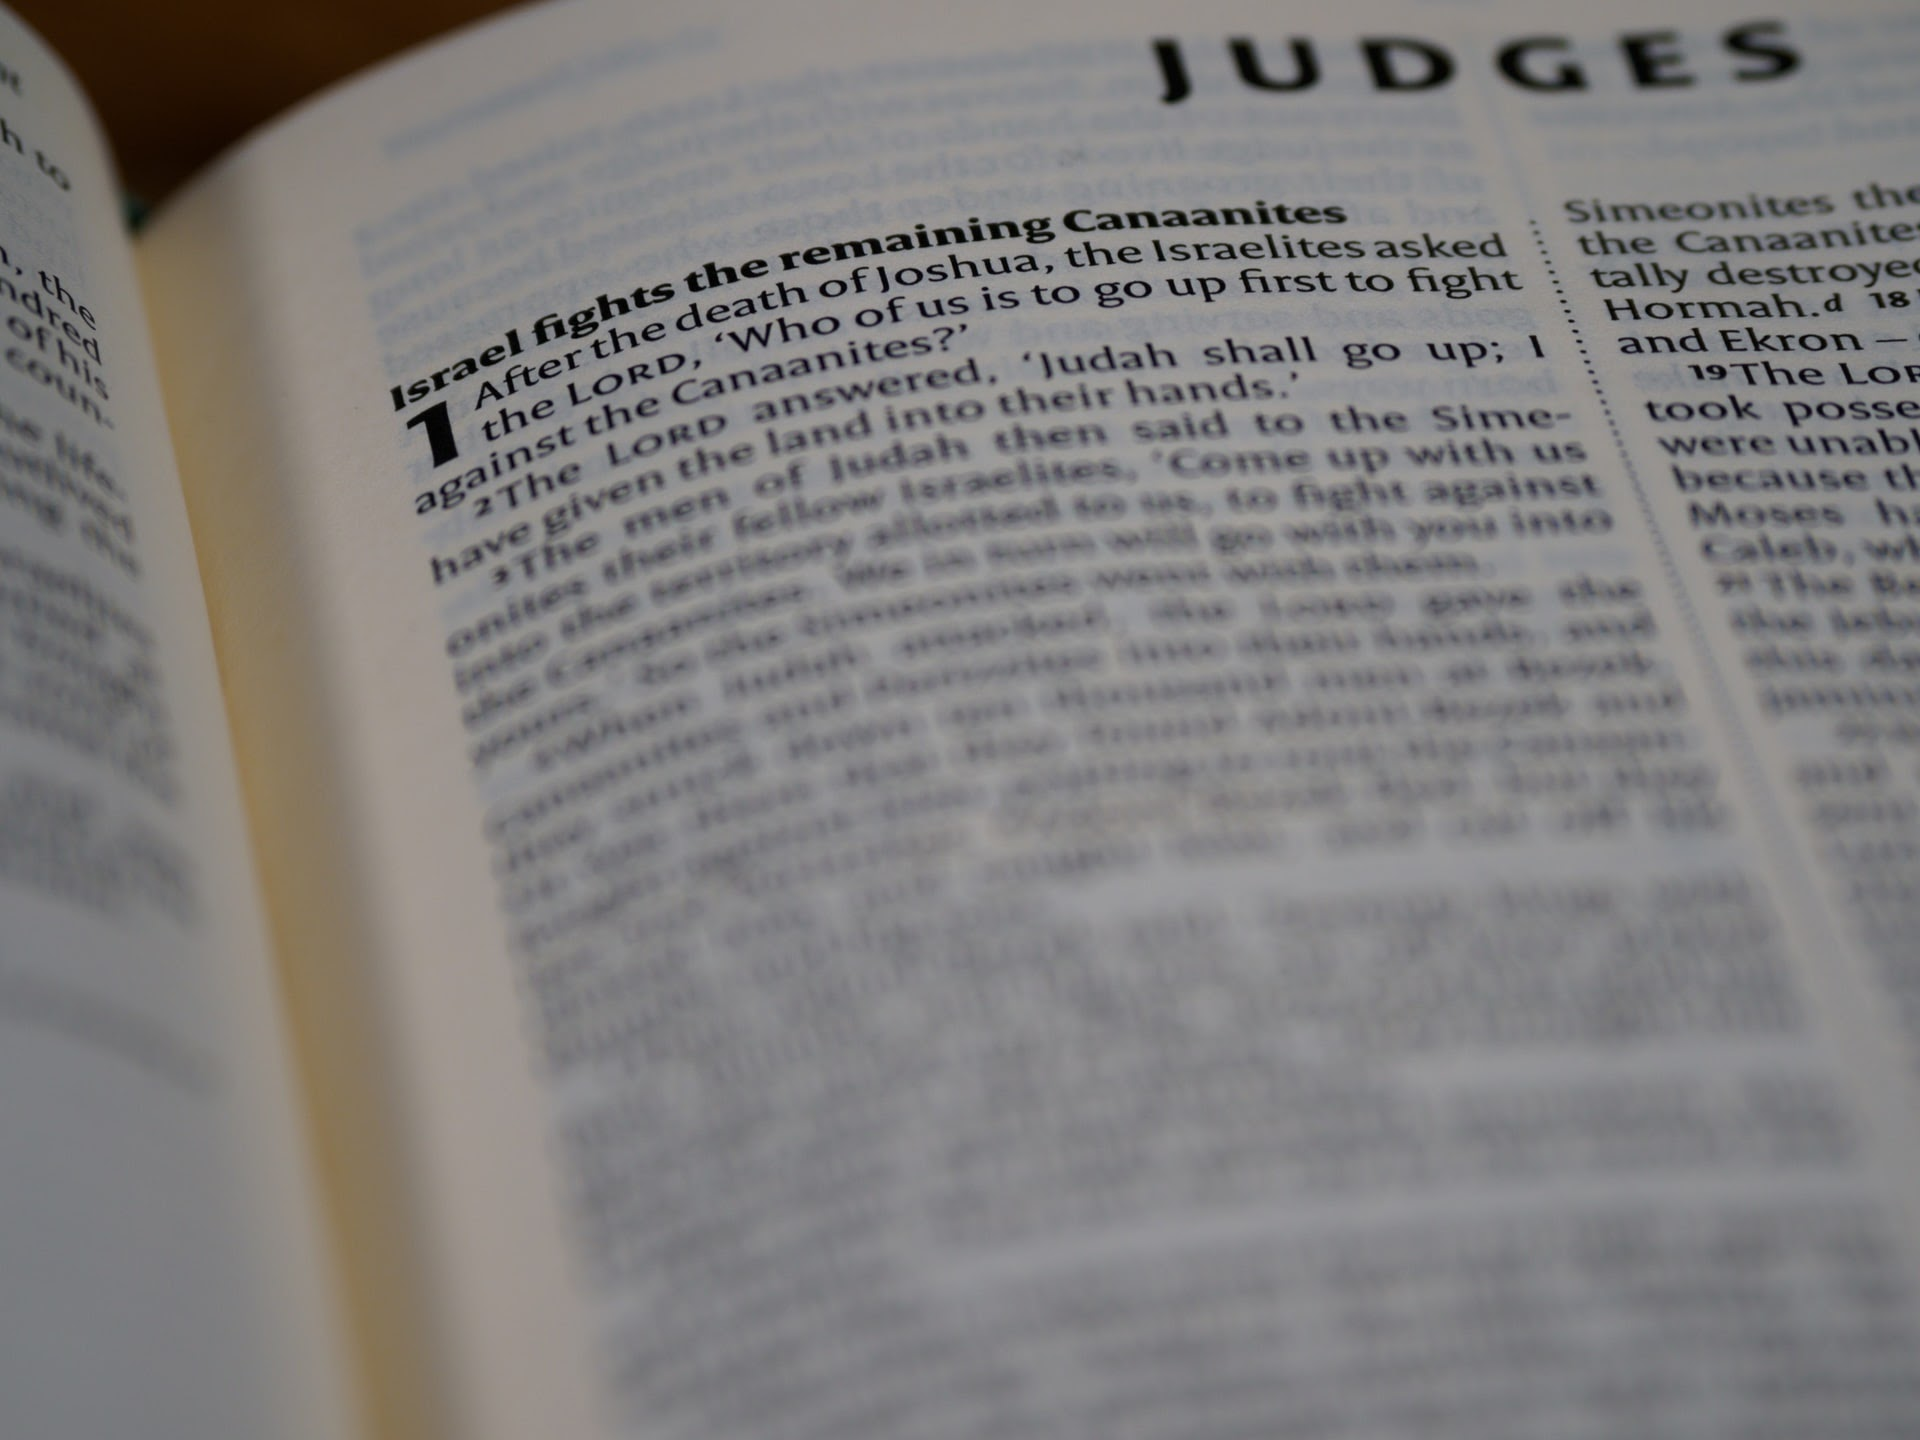 a close up of the Book of Judges chapter in the Bible